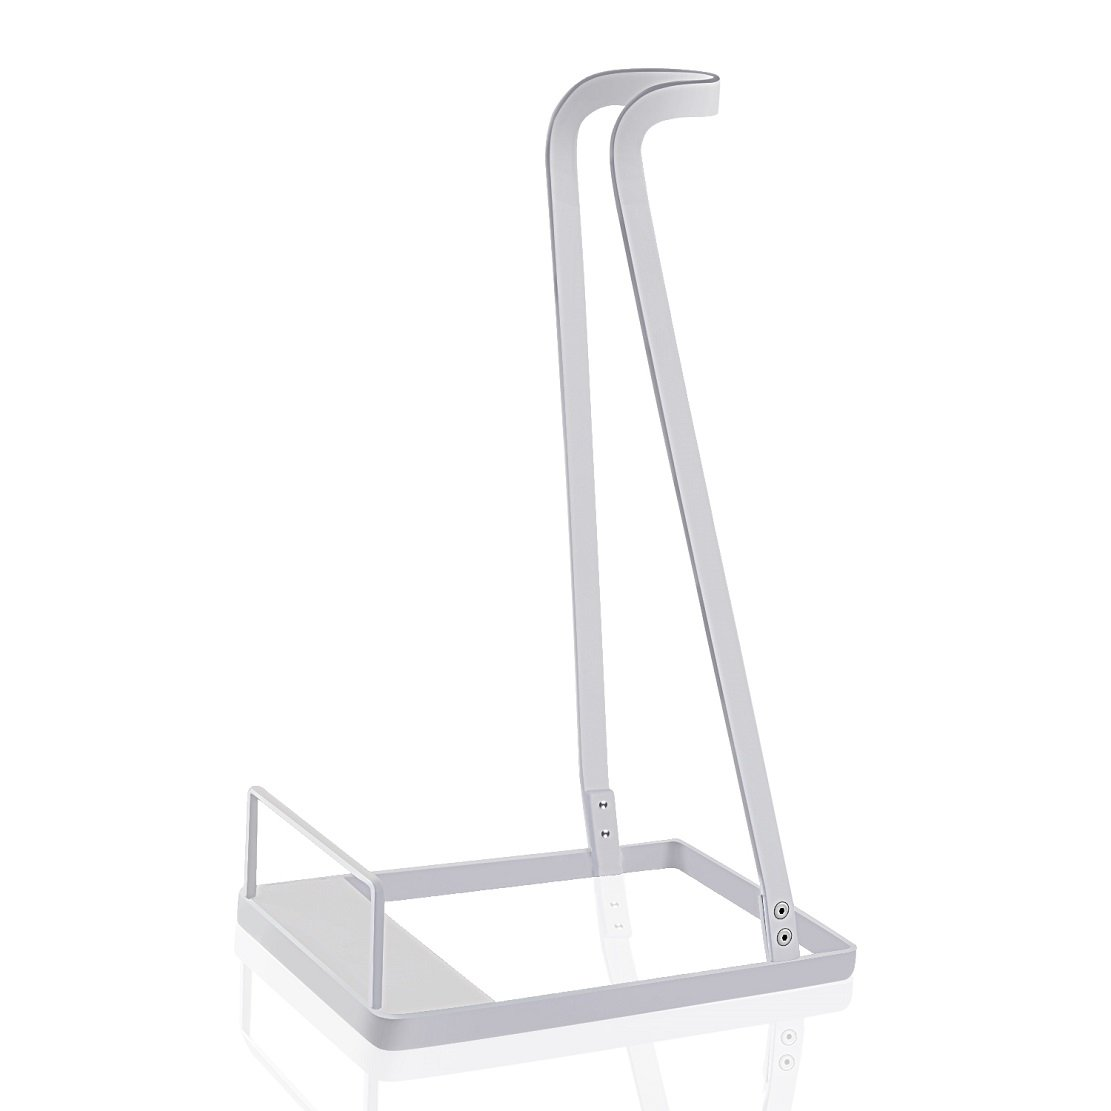 Vacuum Stand for Dyson V6 V7 V8,Other Brands and Generic Stick Cleaner ,Citus Lightweight Storage Rack Steel Support Organizer for Handheld Electric Broom (White, Ideal Gift)